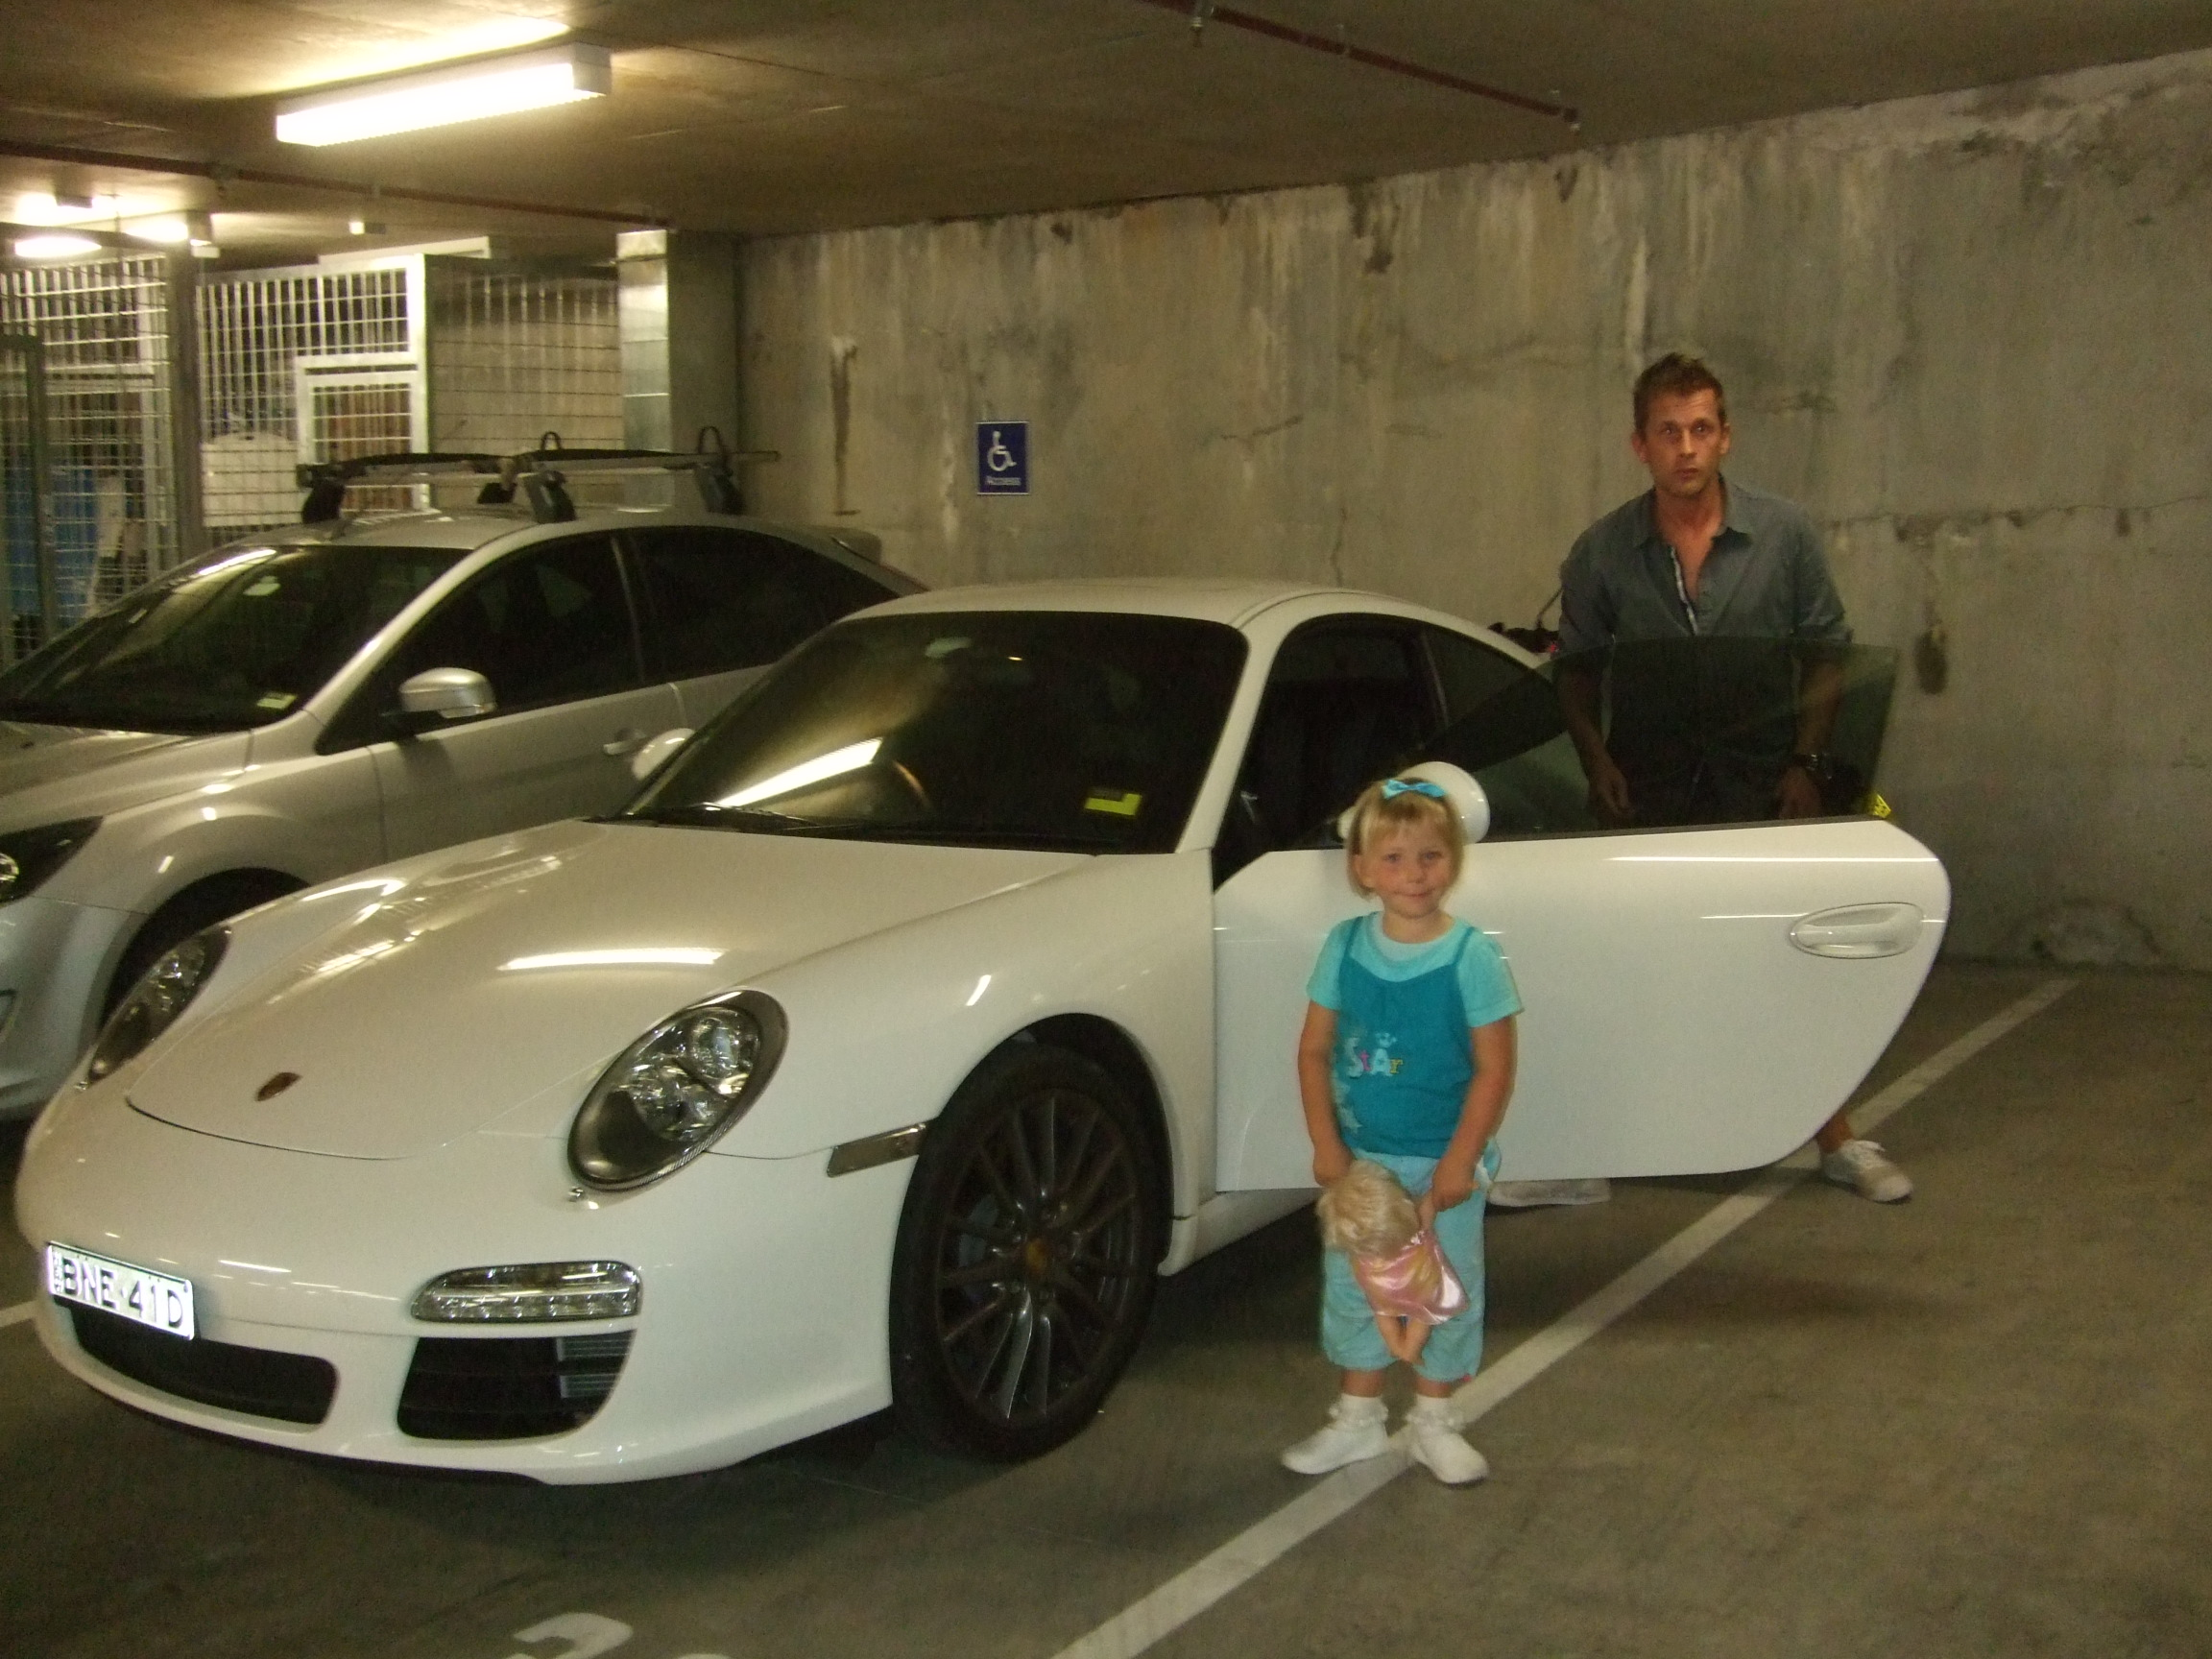 taking-us-sightseeing-in-his-porshe